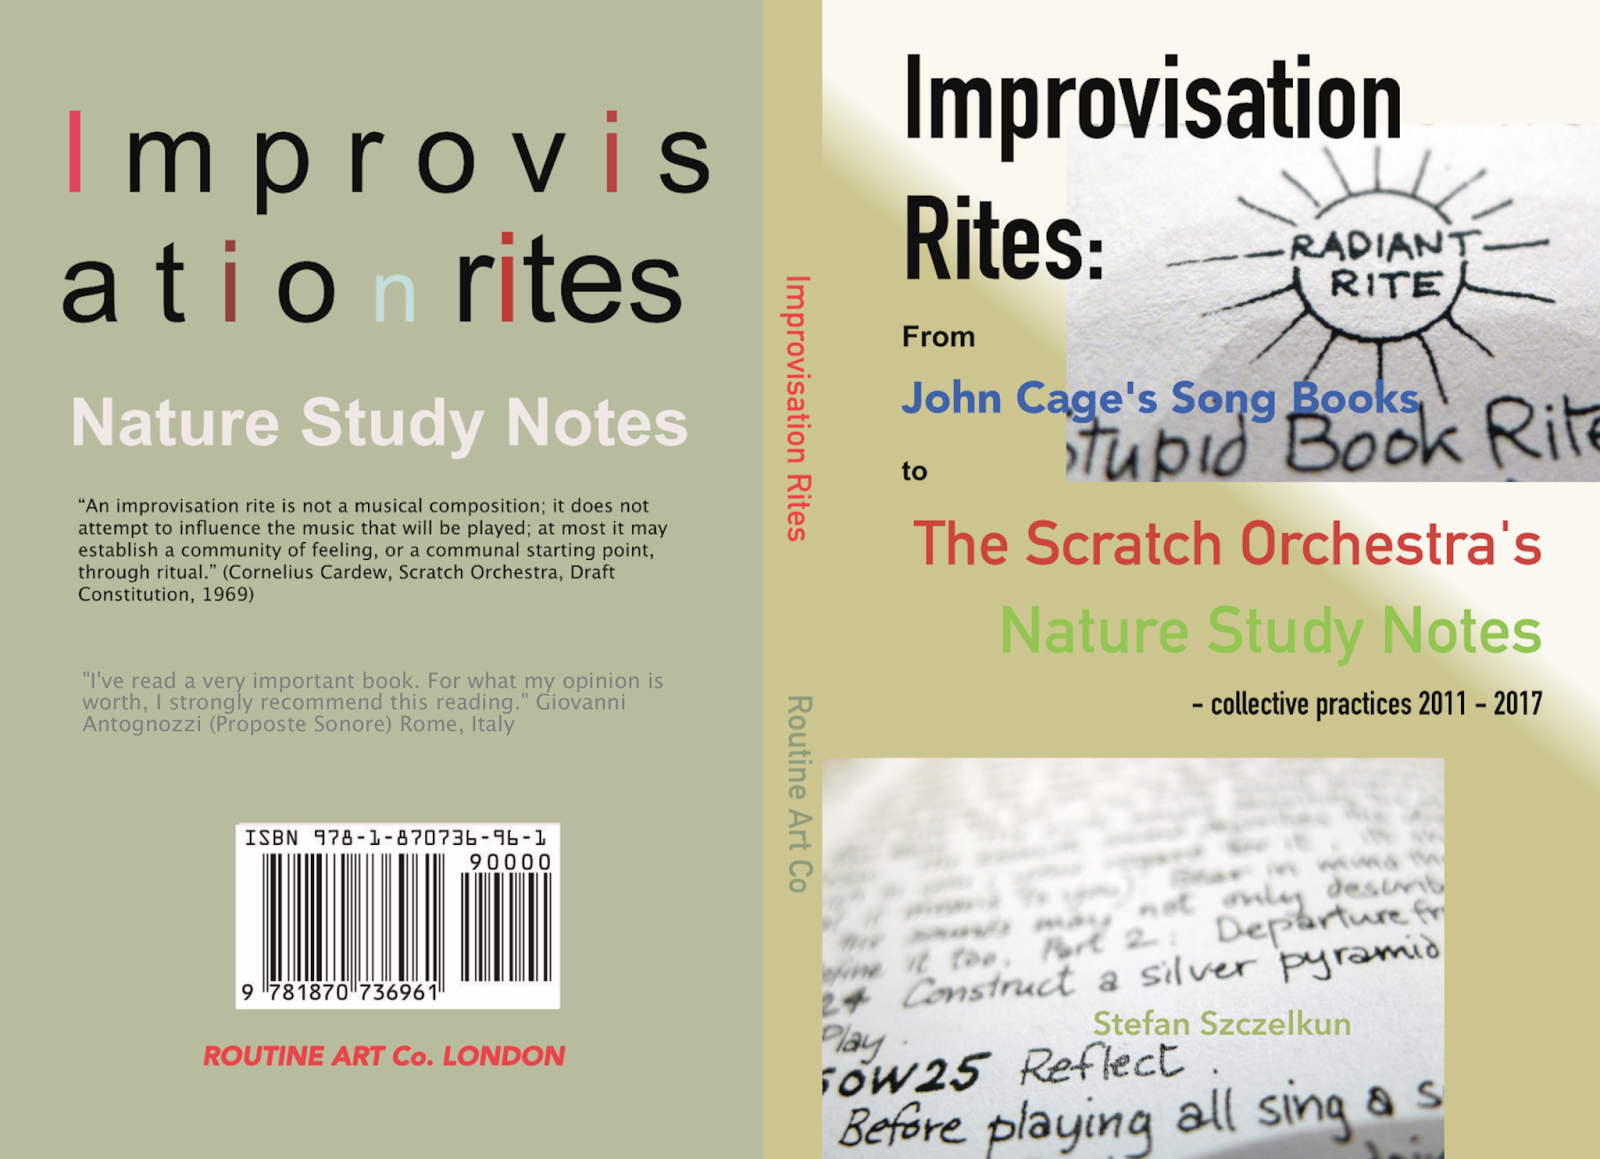 IMPROVISATION RITES: from John Cage's 'Song Books' to the